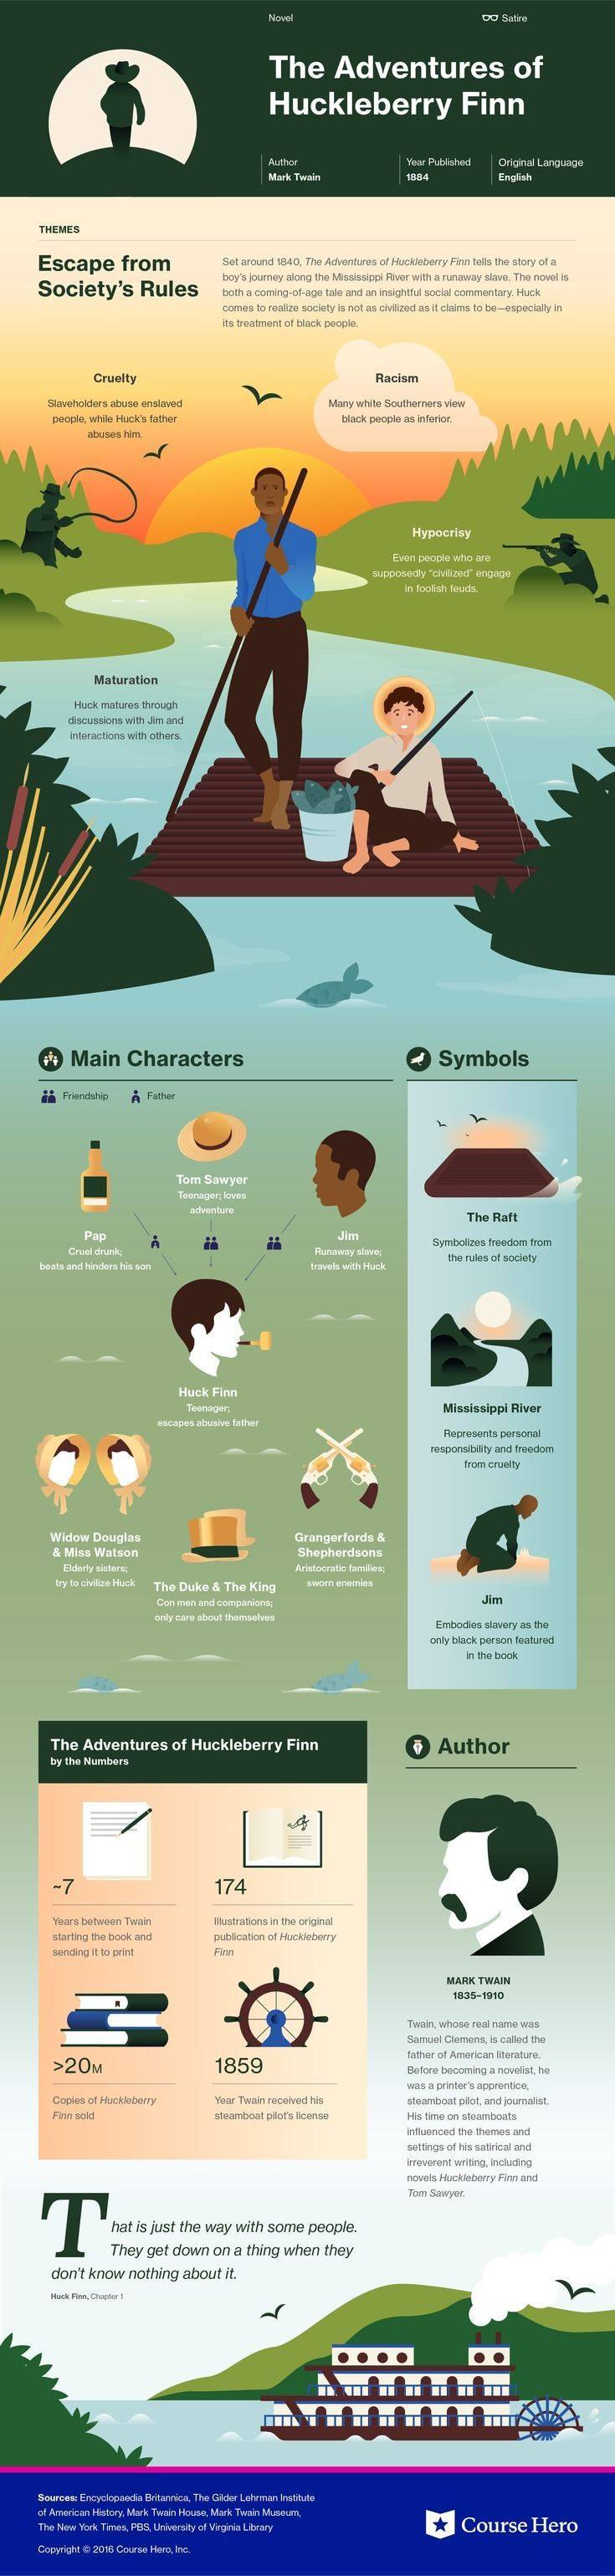 This Coursehero Infographic On The Adventures Of